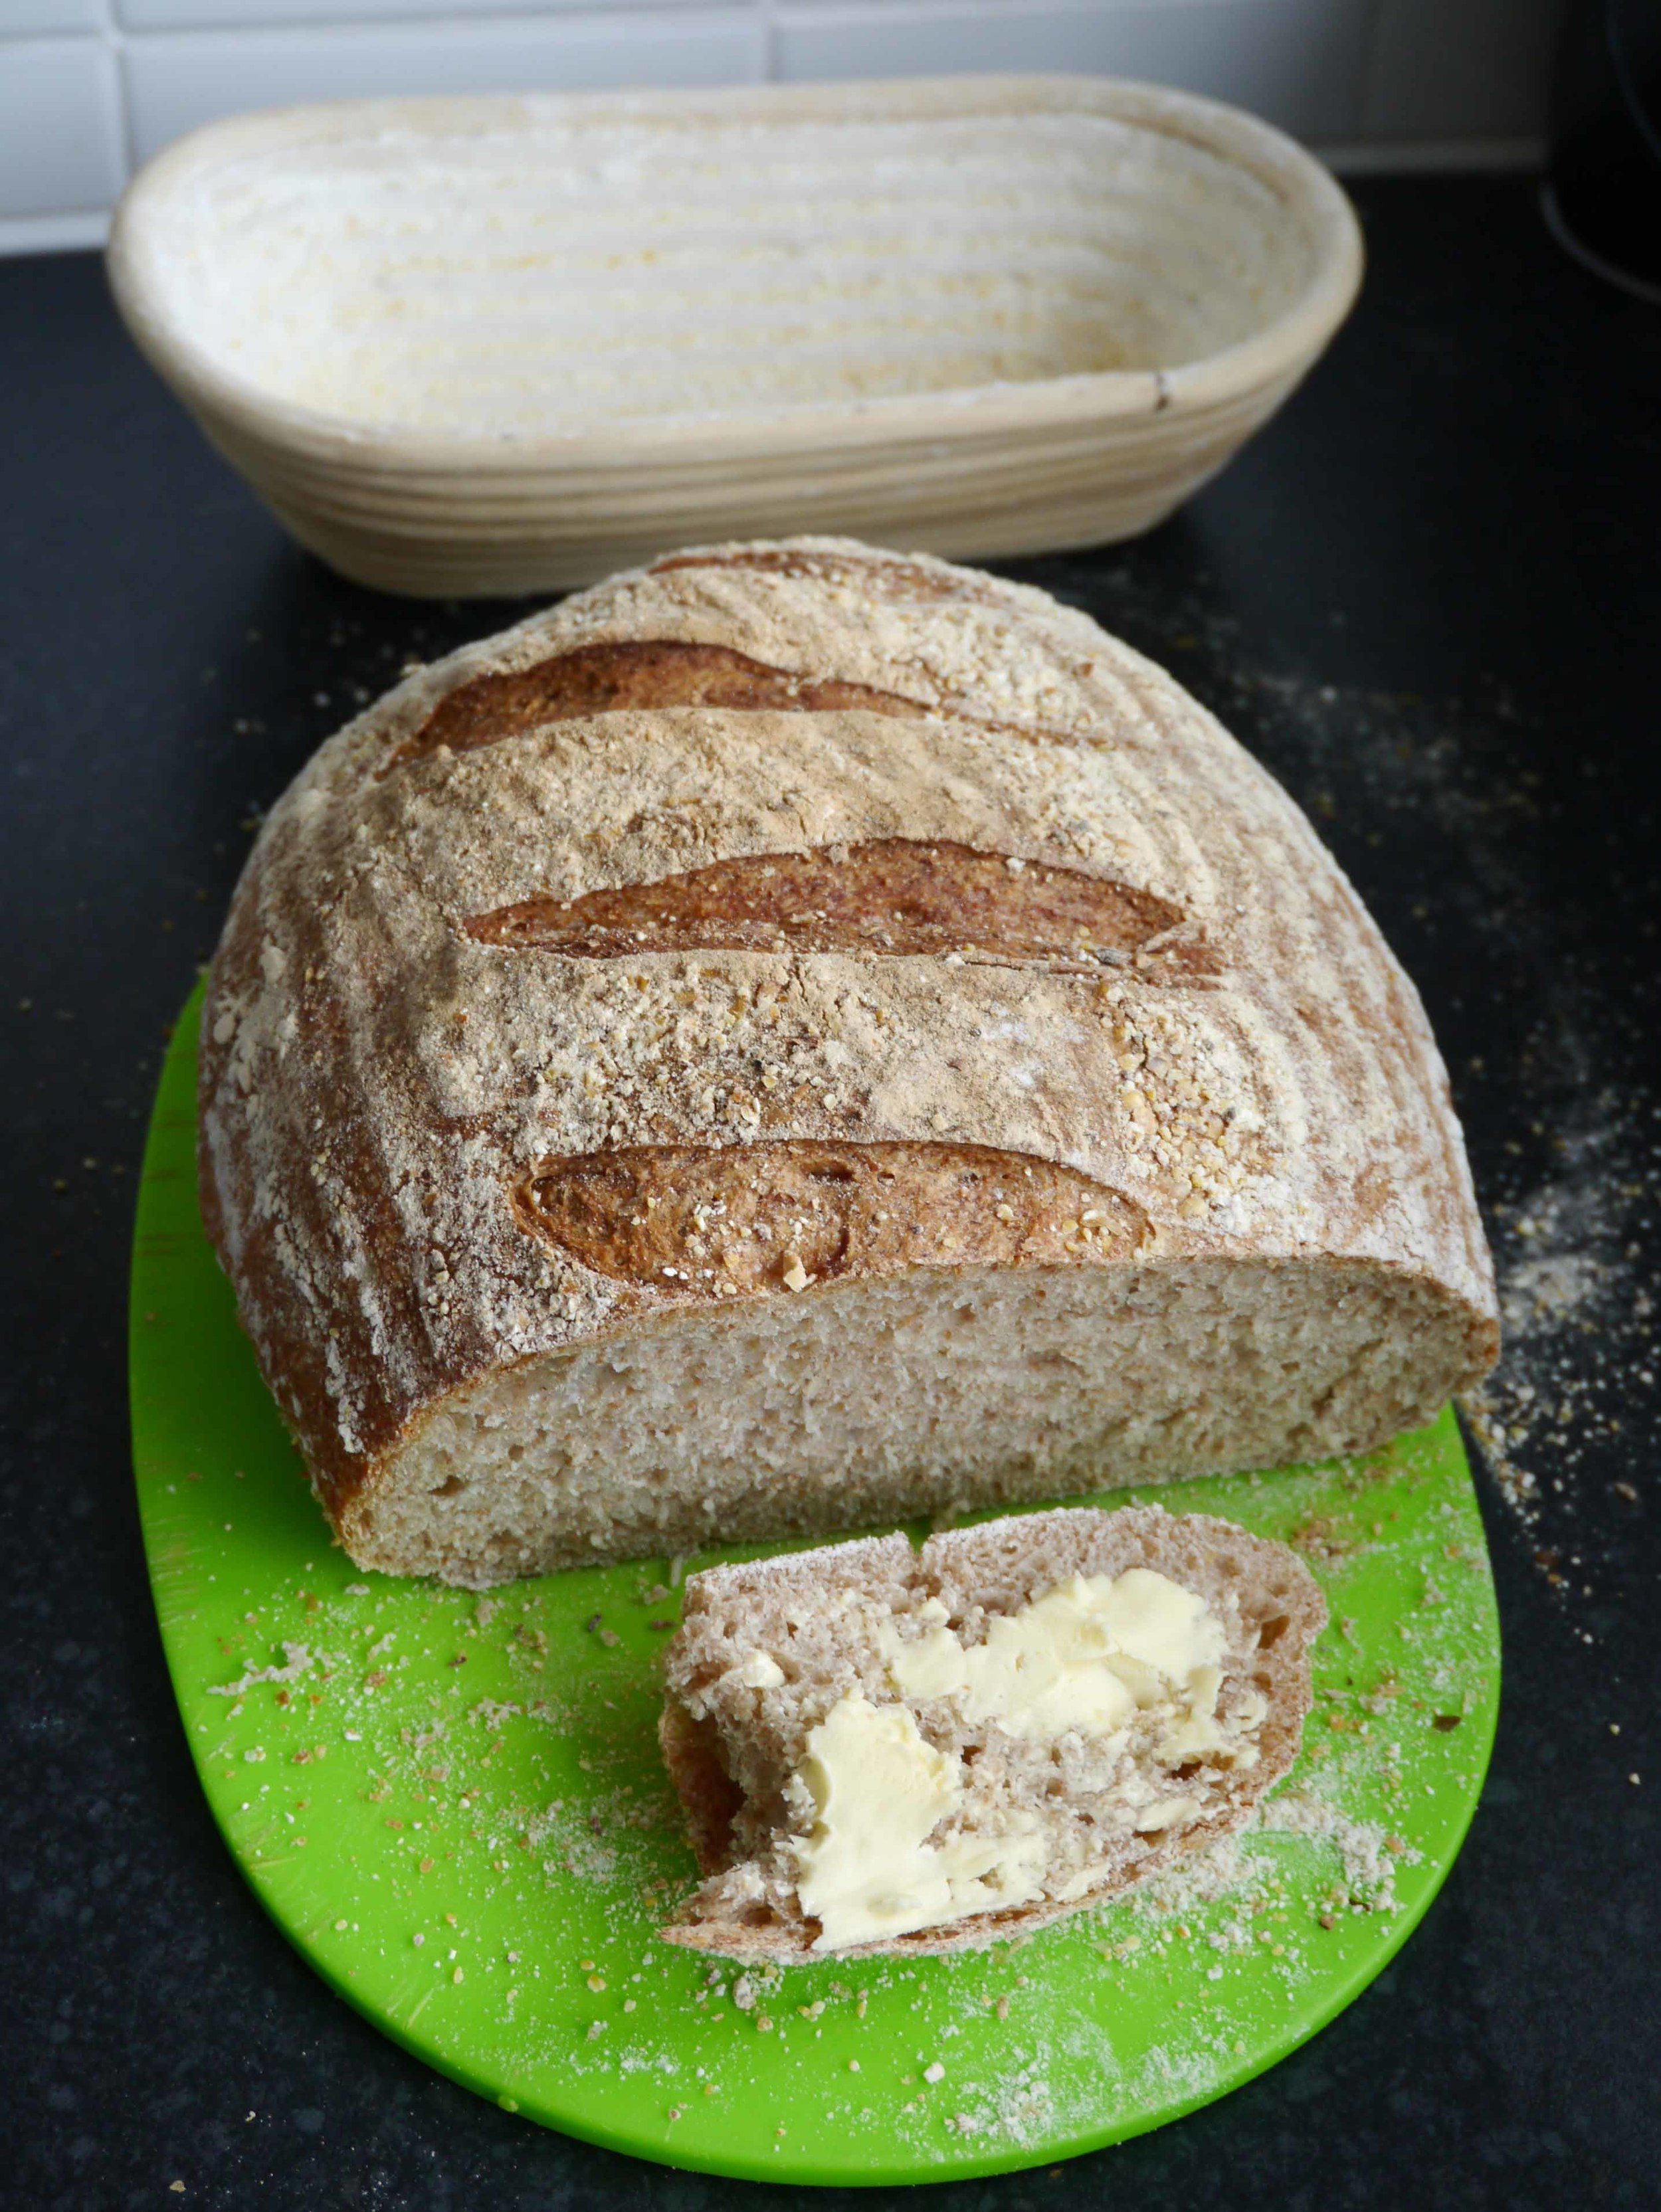 If only a photo could convey the heavenly smell and taste of a sourdough loaf